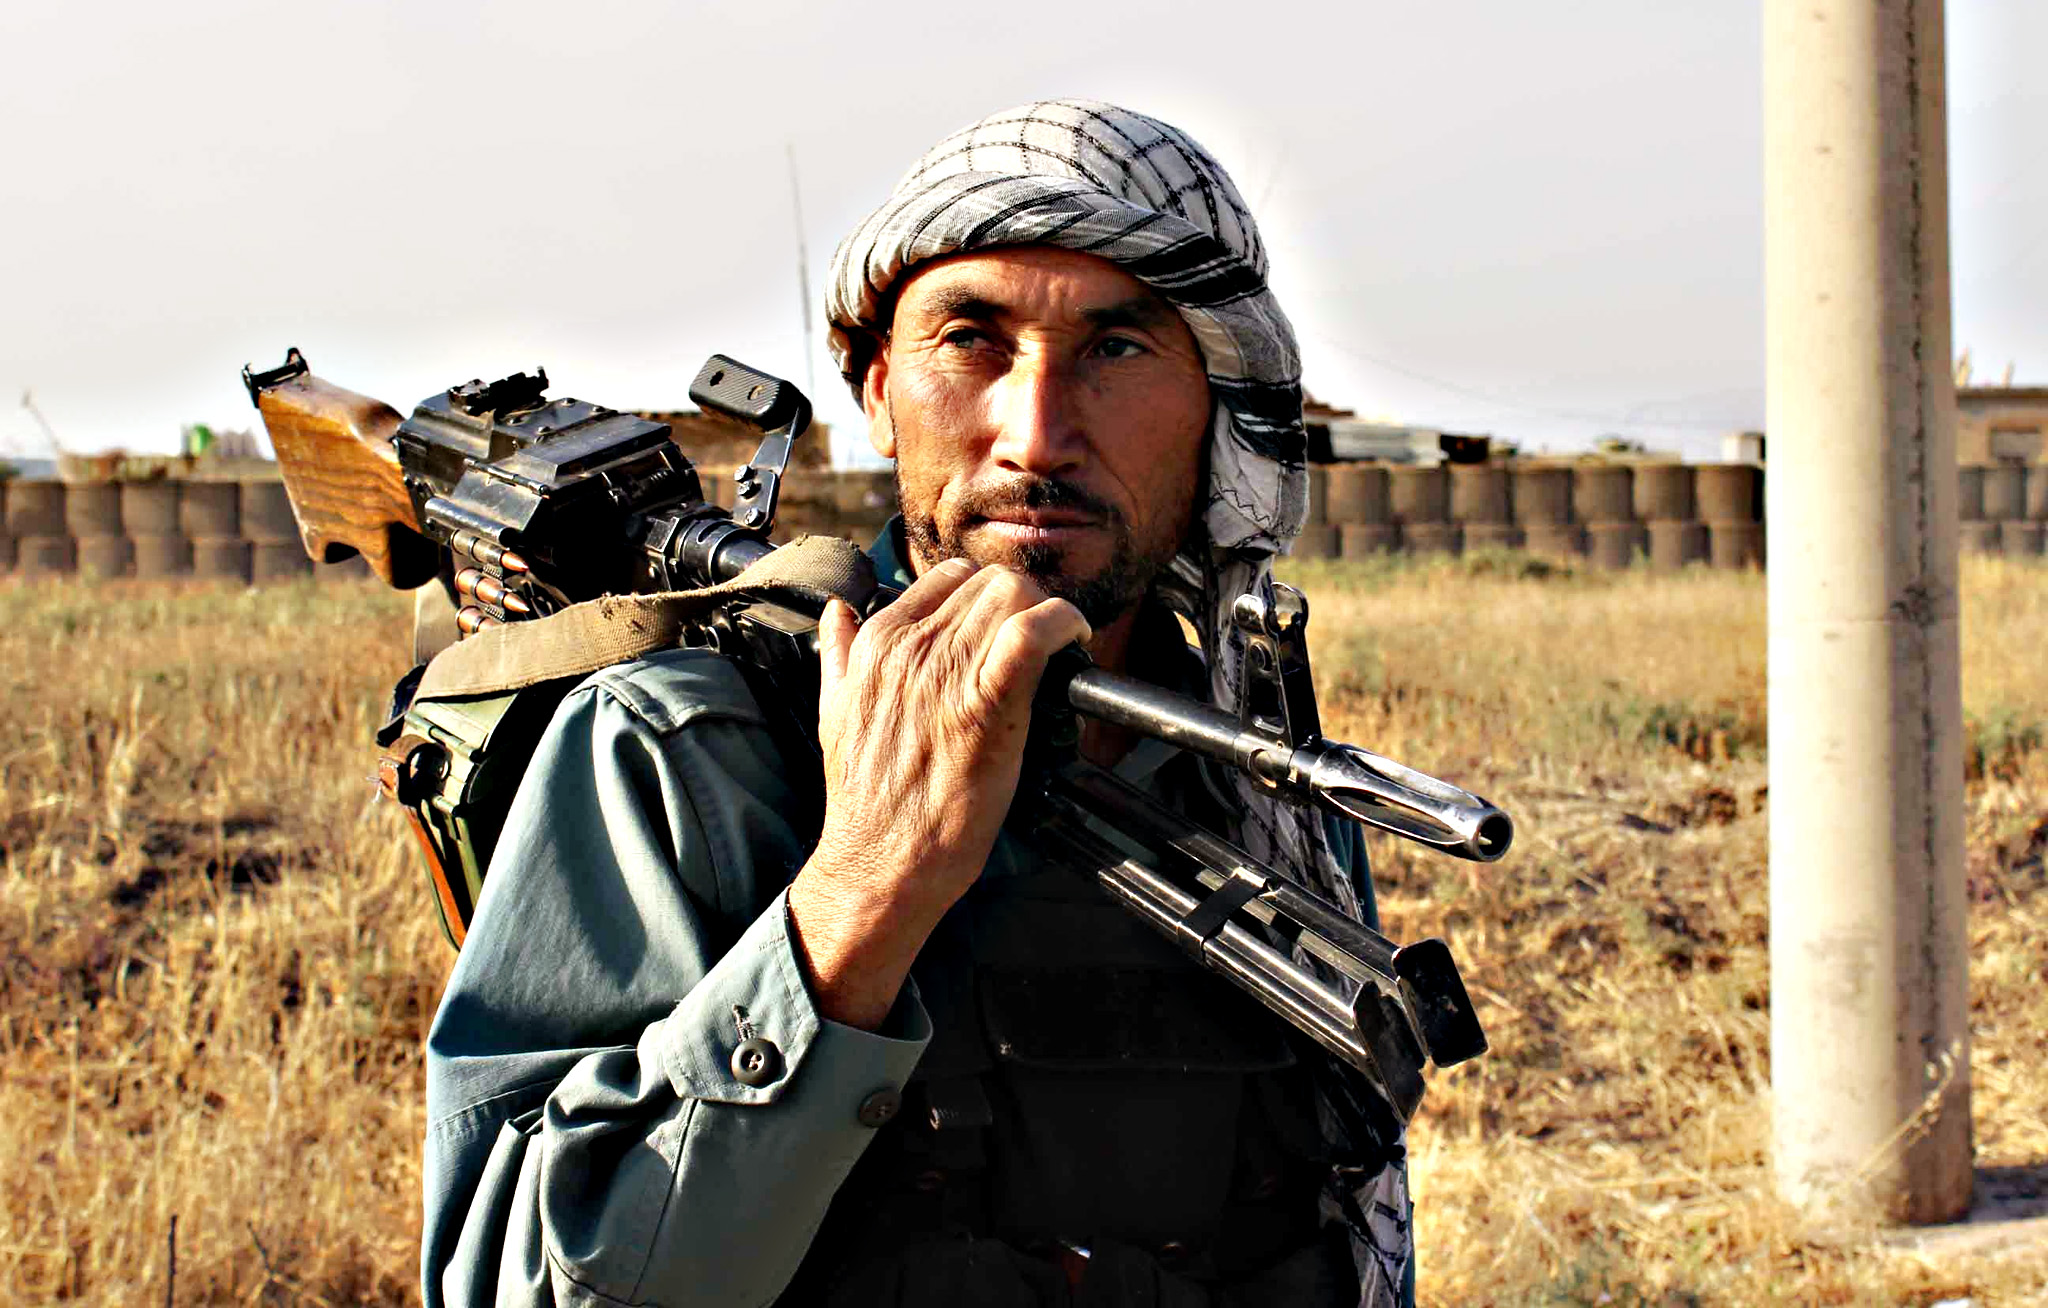 An Afghan policeman holds a gun on his sholder a day after Taliban insurgents overran the strategic northern city of Kunduz, on September 29, 2015.  Afghanistan on September 29, 2015, mobilised reinforcements for a counter-offensive to take back Kunduz, a day after Taliban insurgents overran the strategic northern city in their biggest victory since being ousted from power in 2001